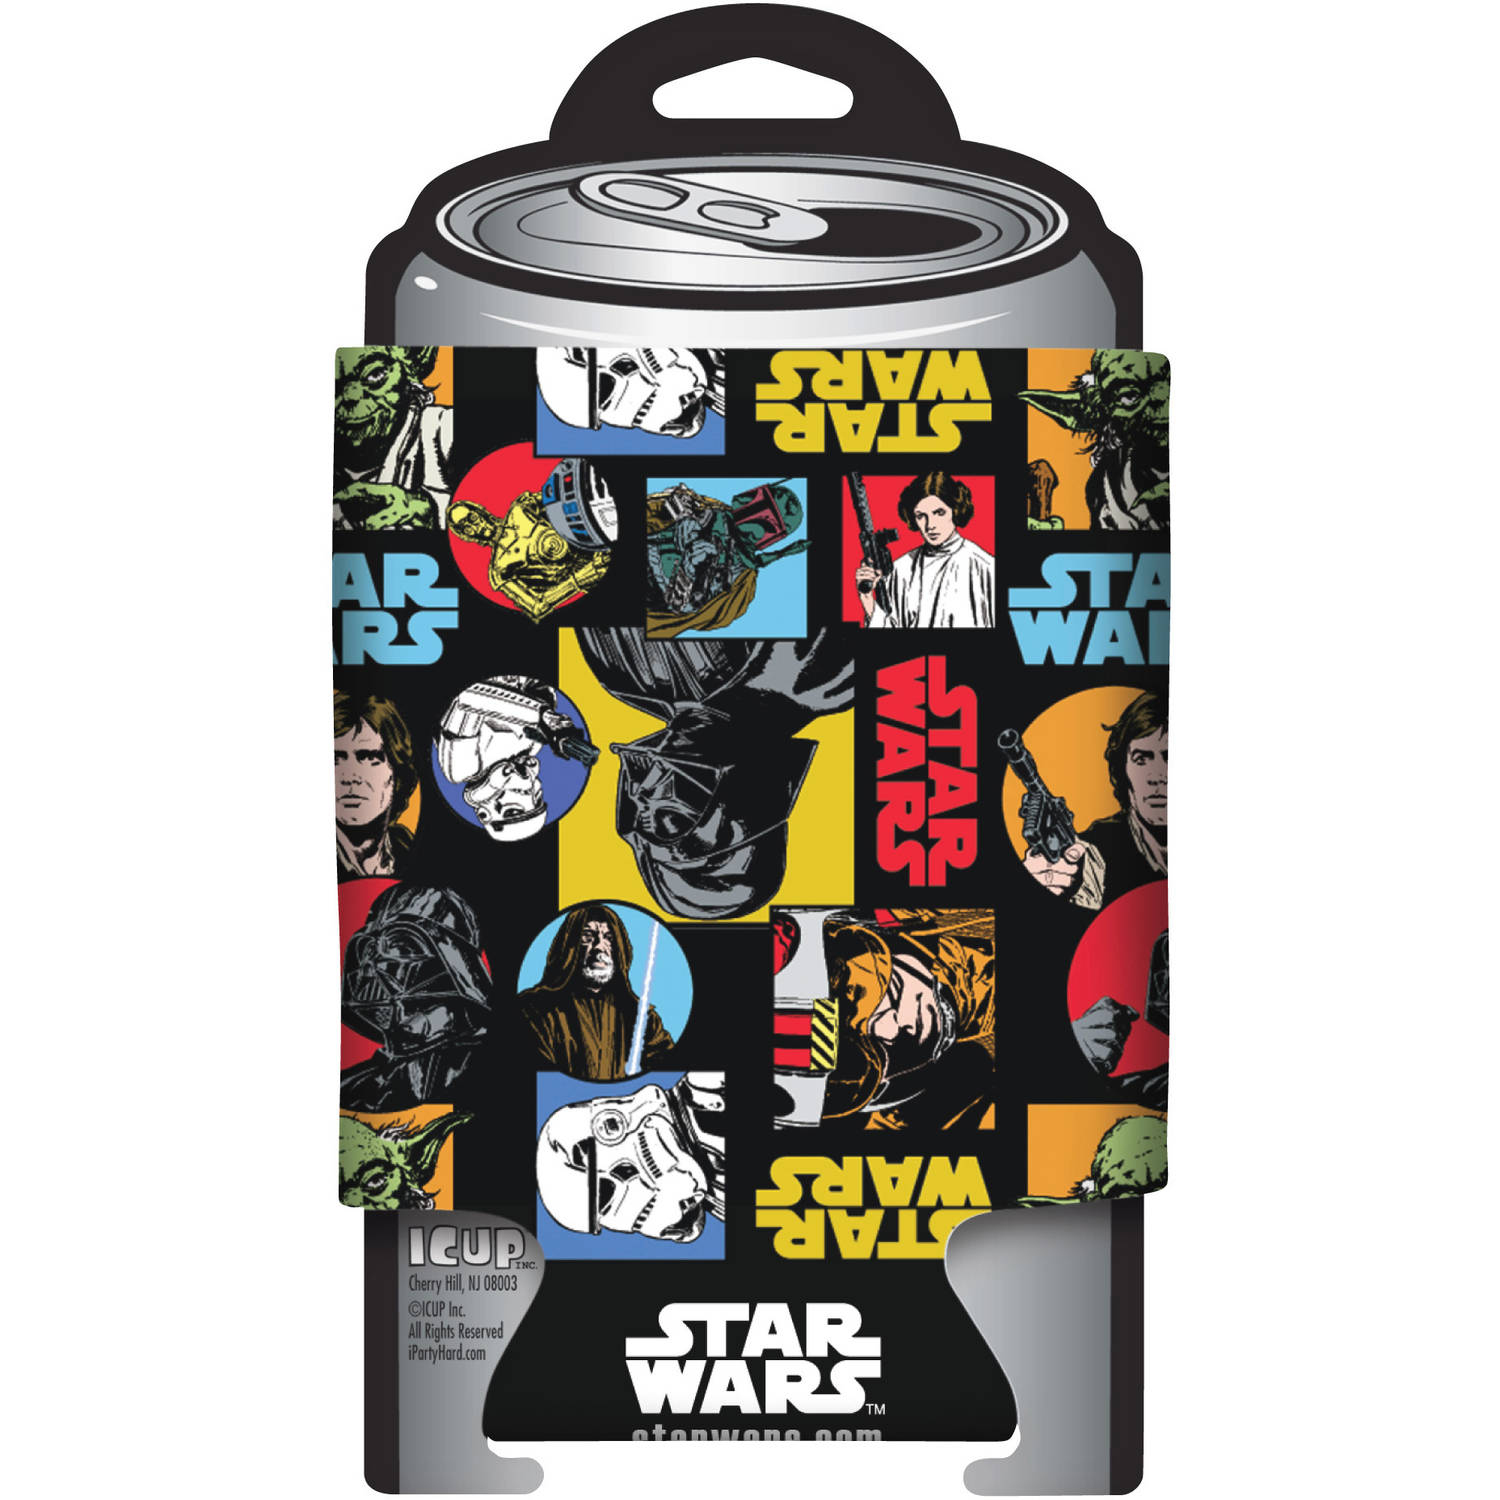 Star Wars Pattern Can Cooler